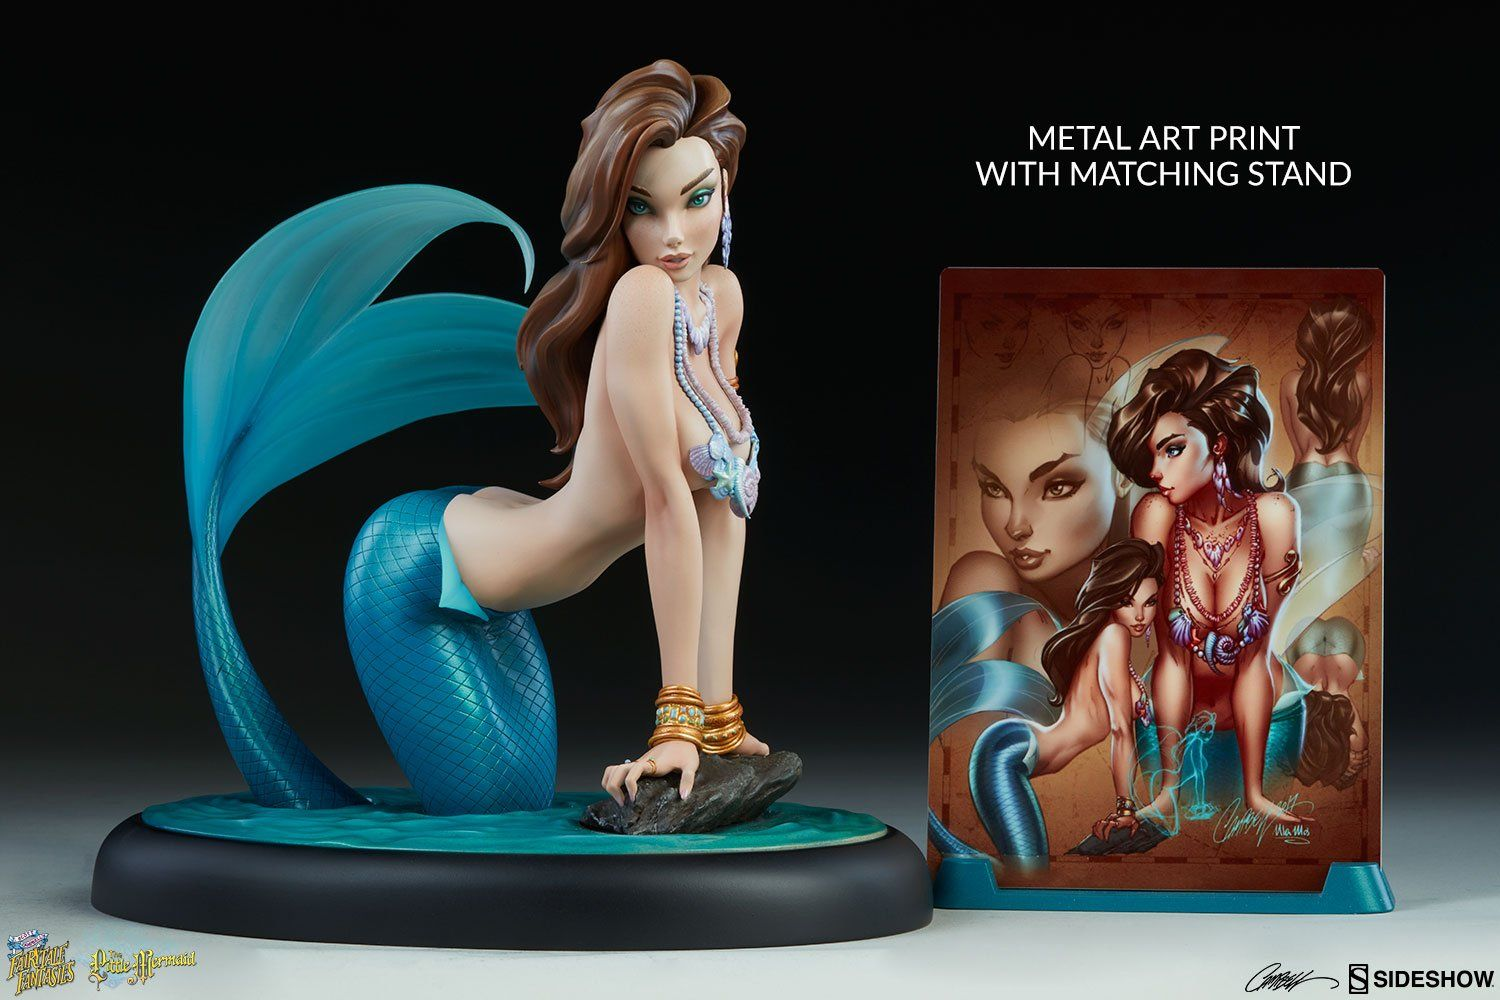 PRÉ VENDA: Estátua The Little Mermaid: Fairytale Fantasies Collection - Sideshow Collectibles